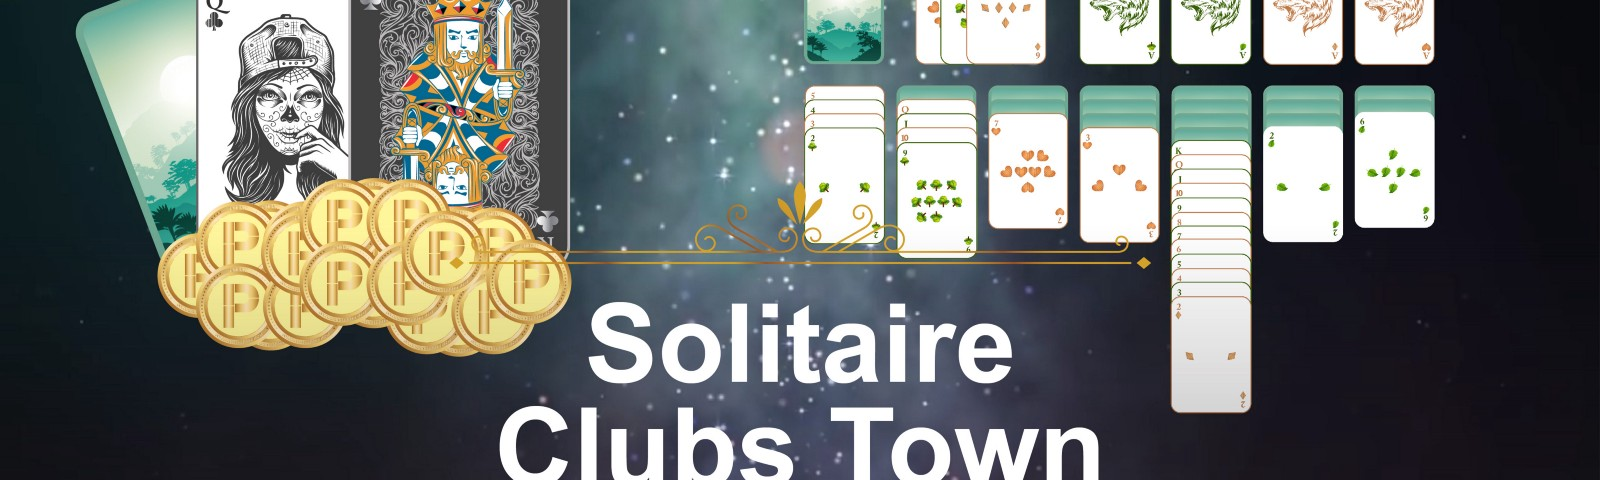 Solitaire Clubs Town